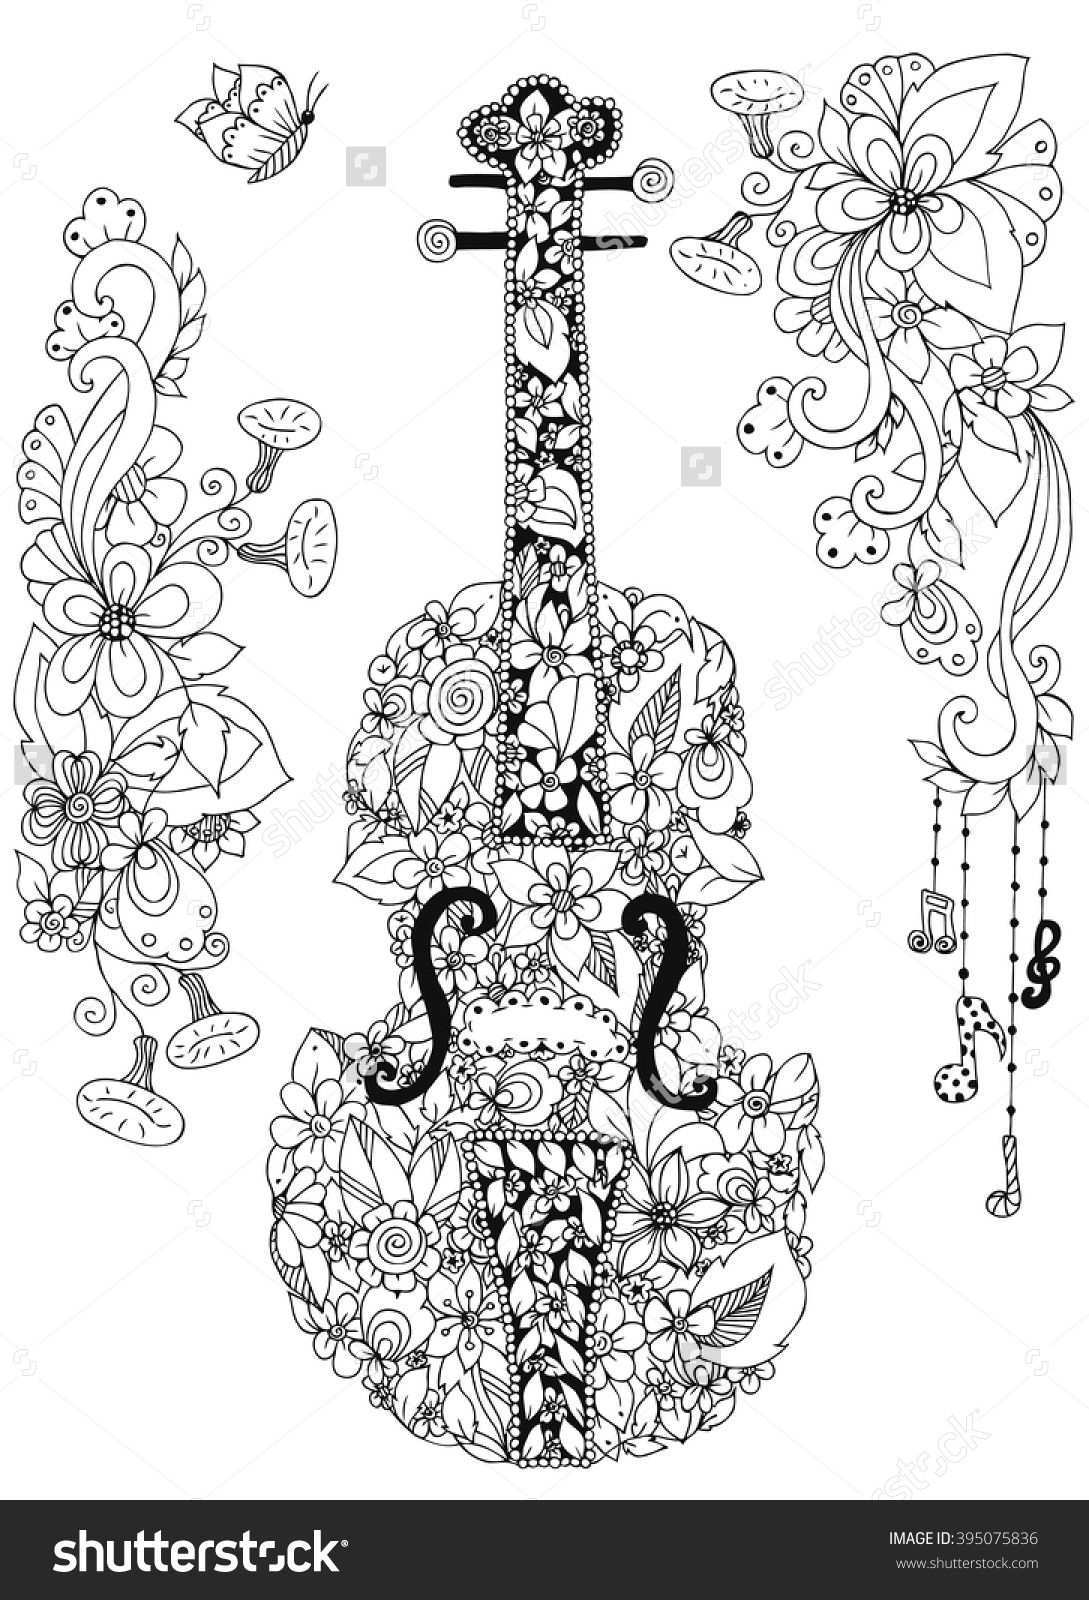 Zentangle violin cello of flowers doodle zenart for Cello coloring page